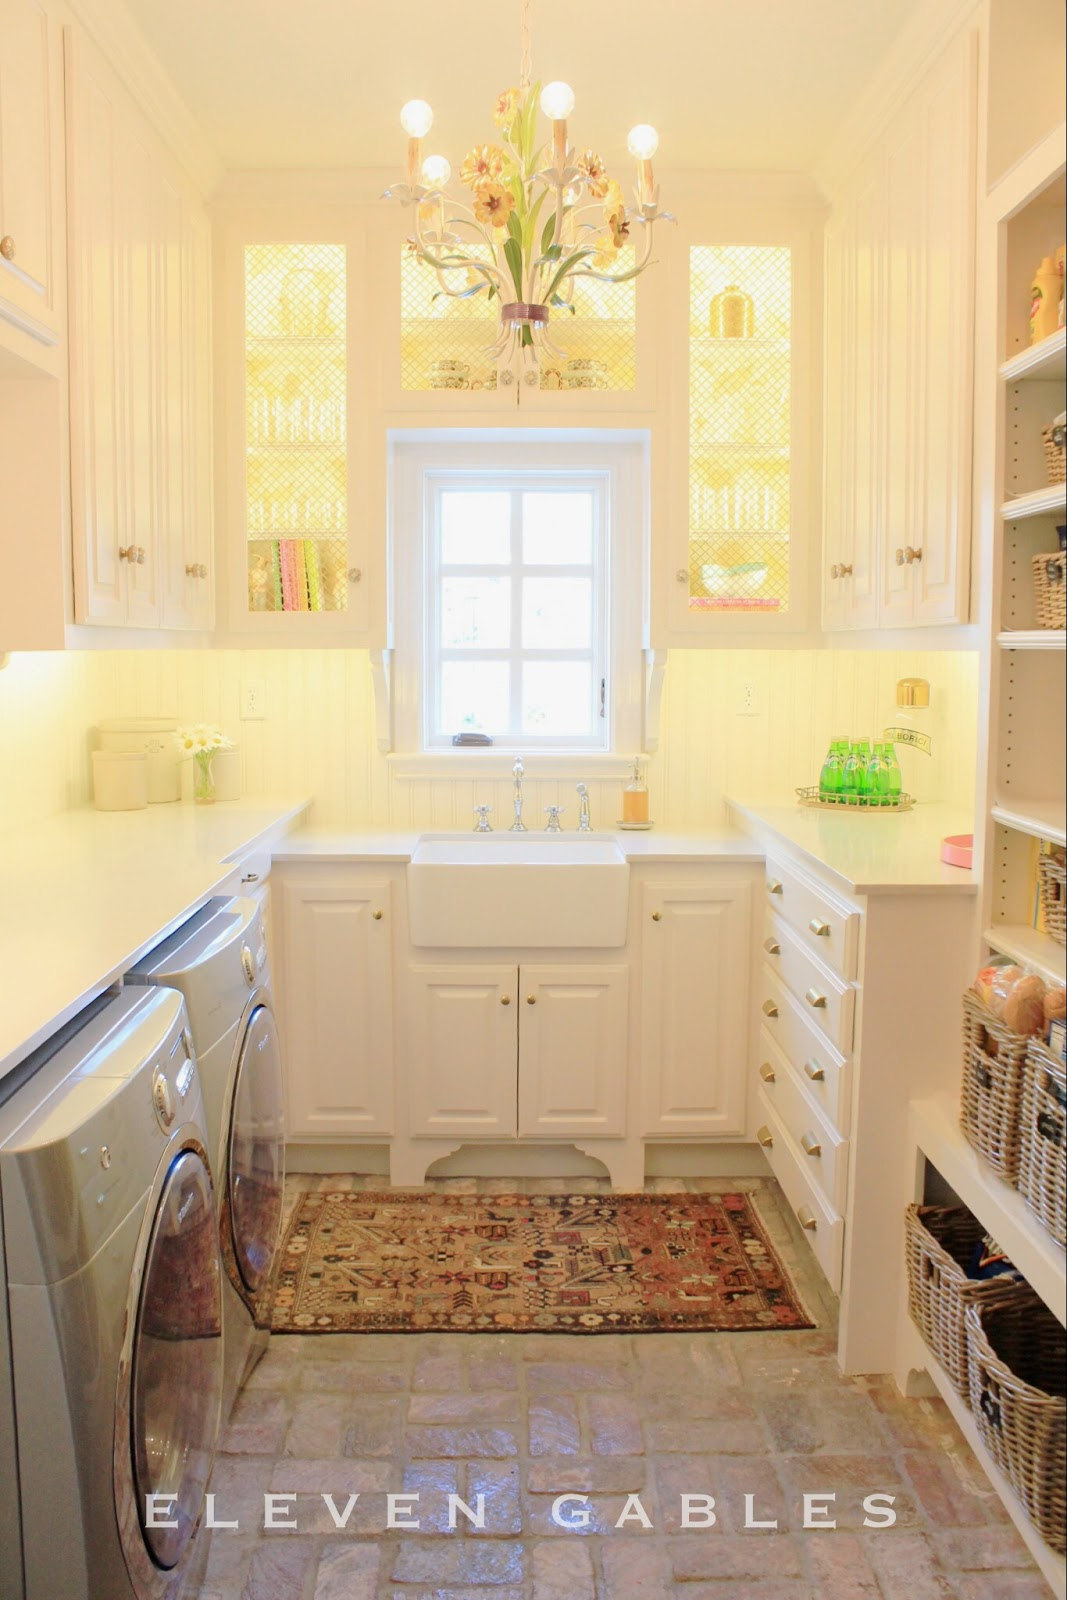 What Goes In A Laundry Room